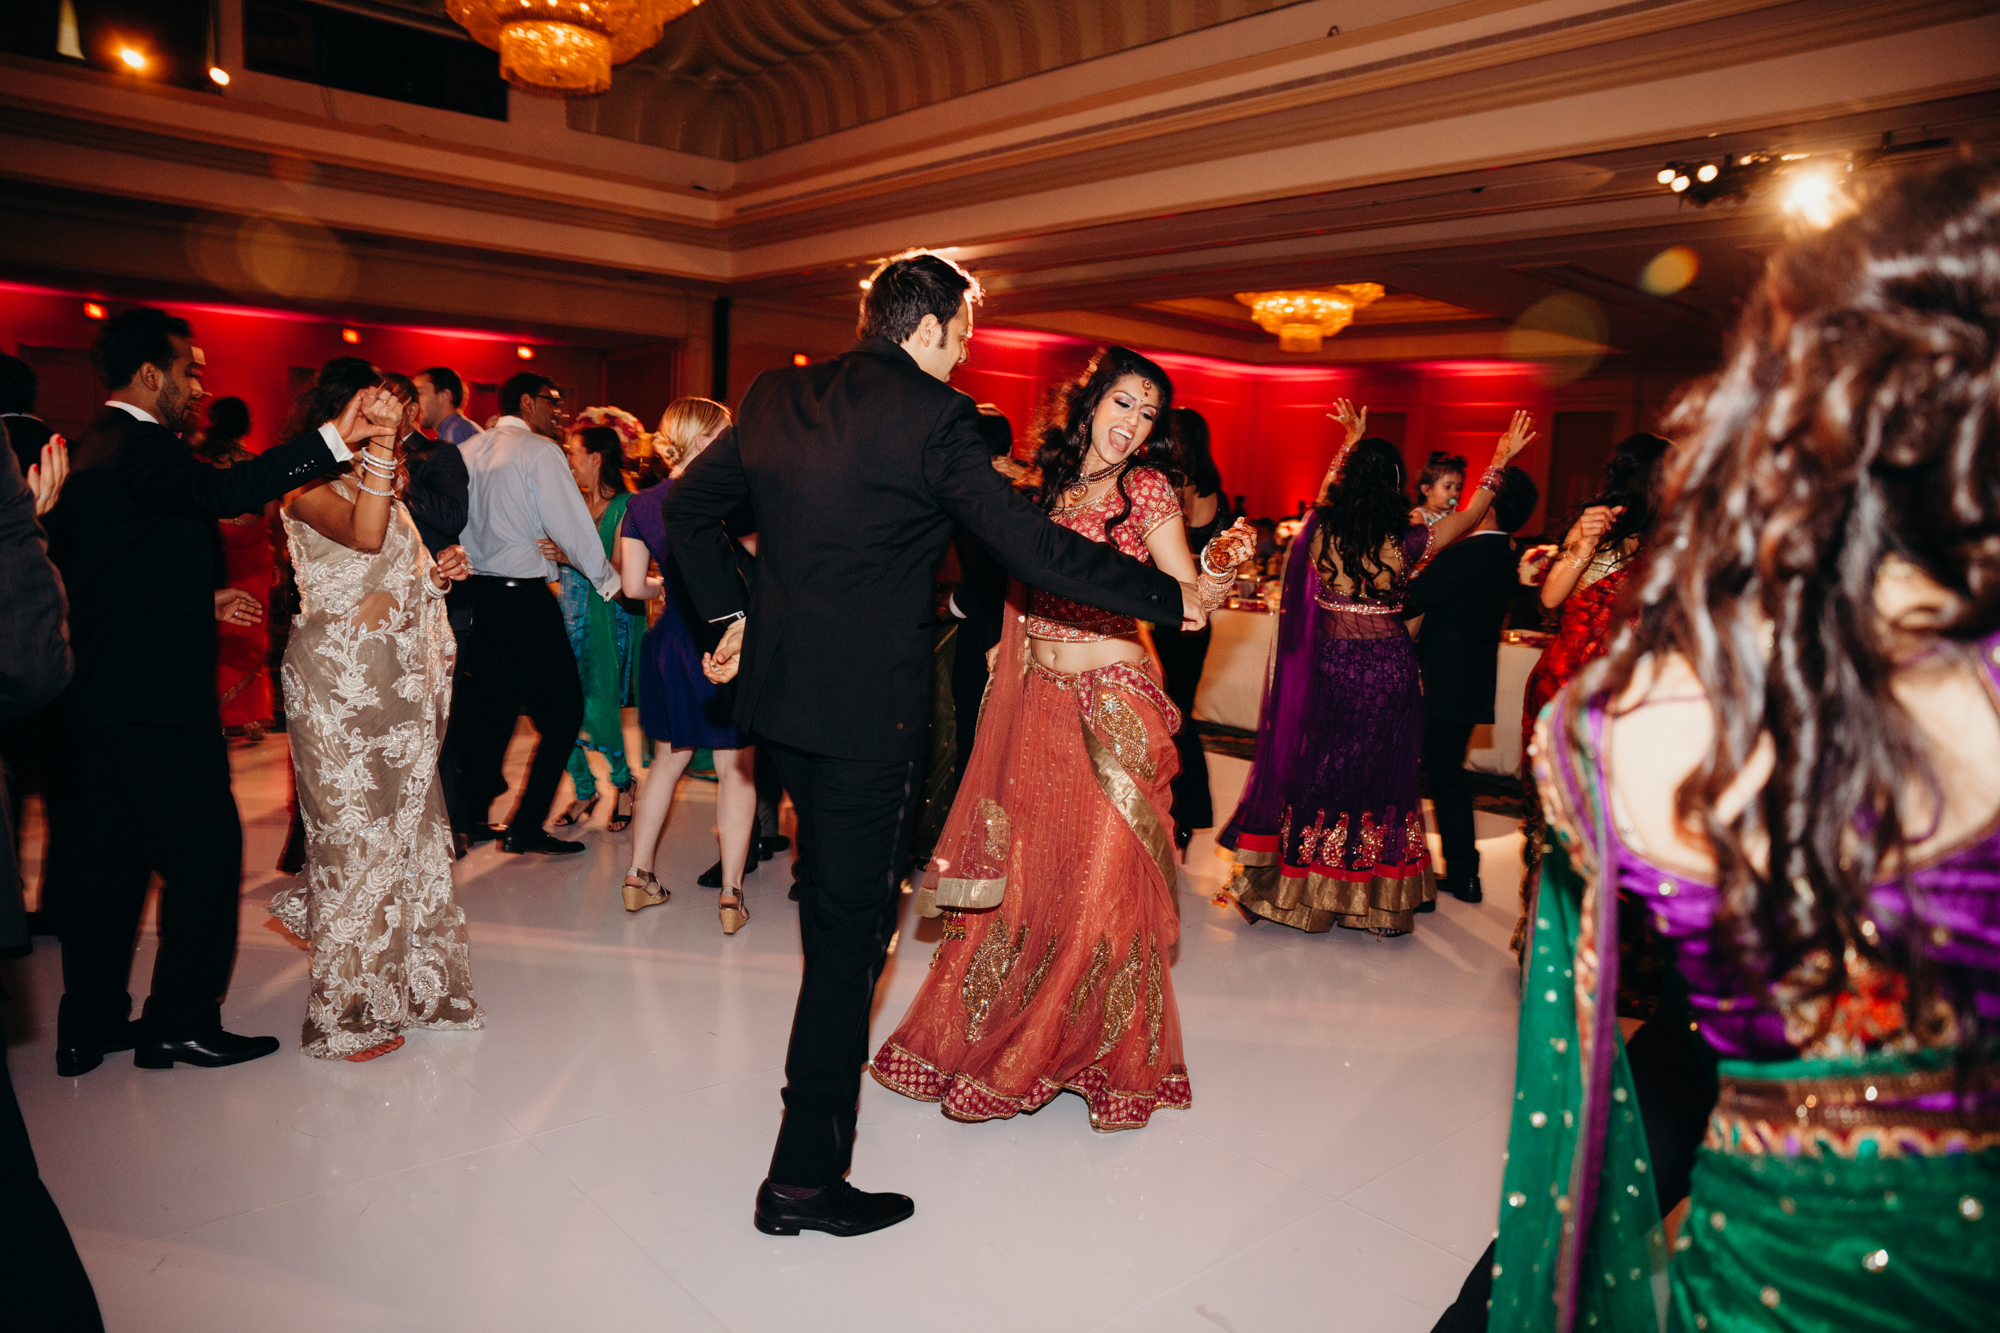 michigan-indian-wedding-photographers-2.jpg